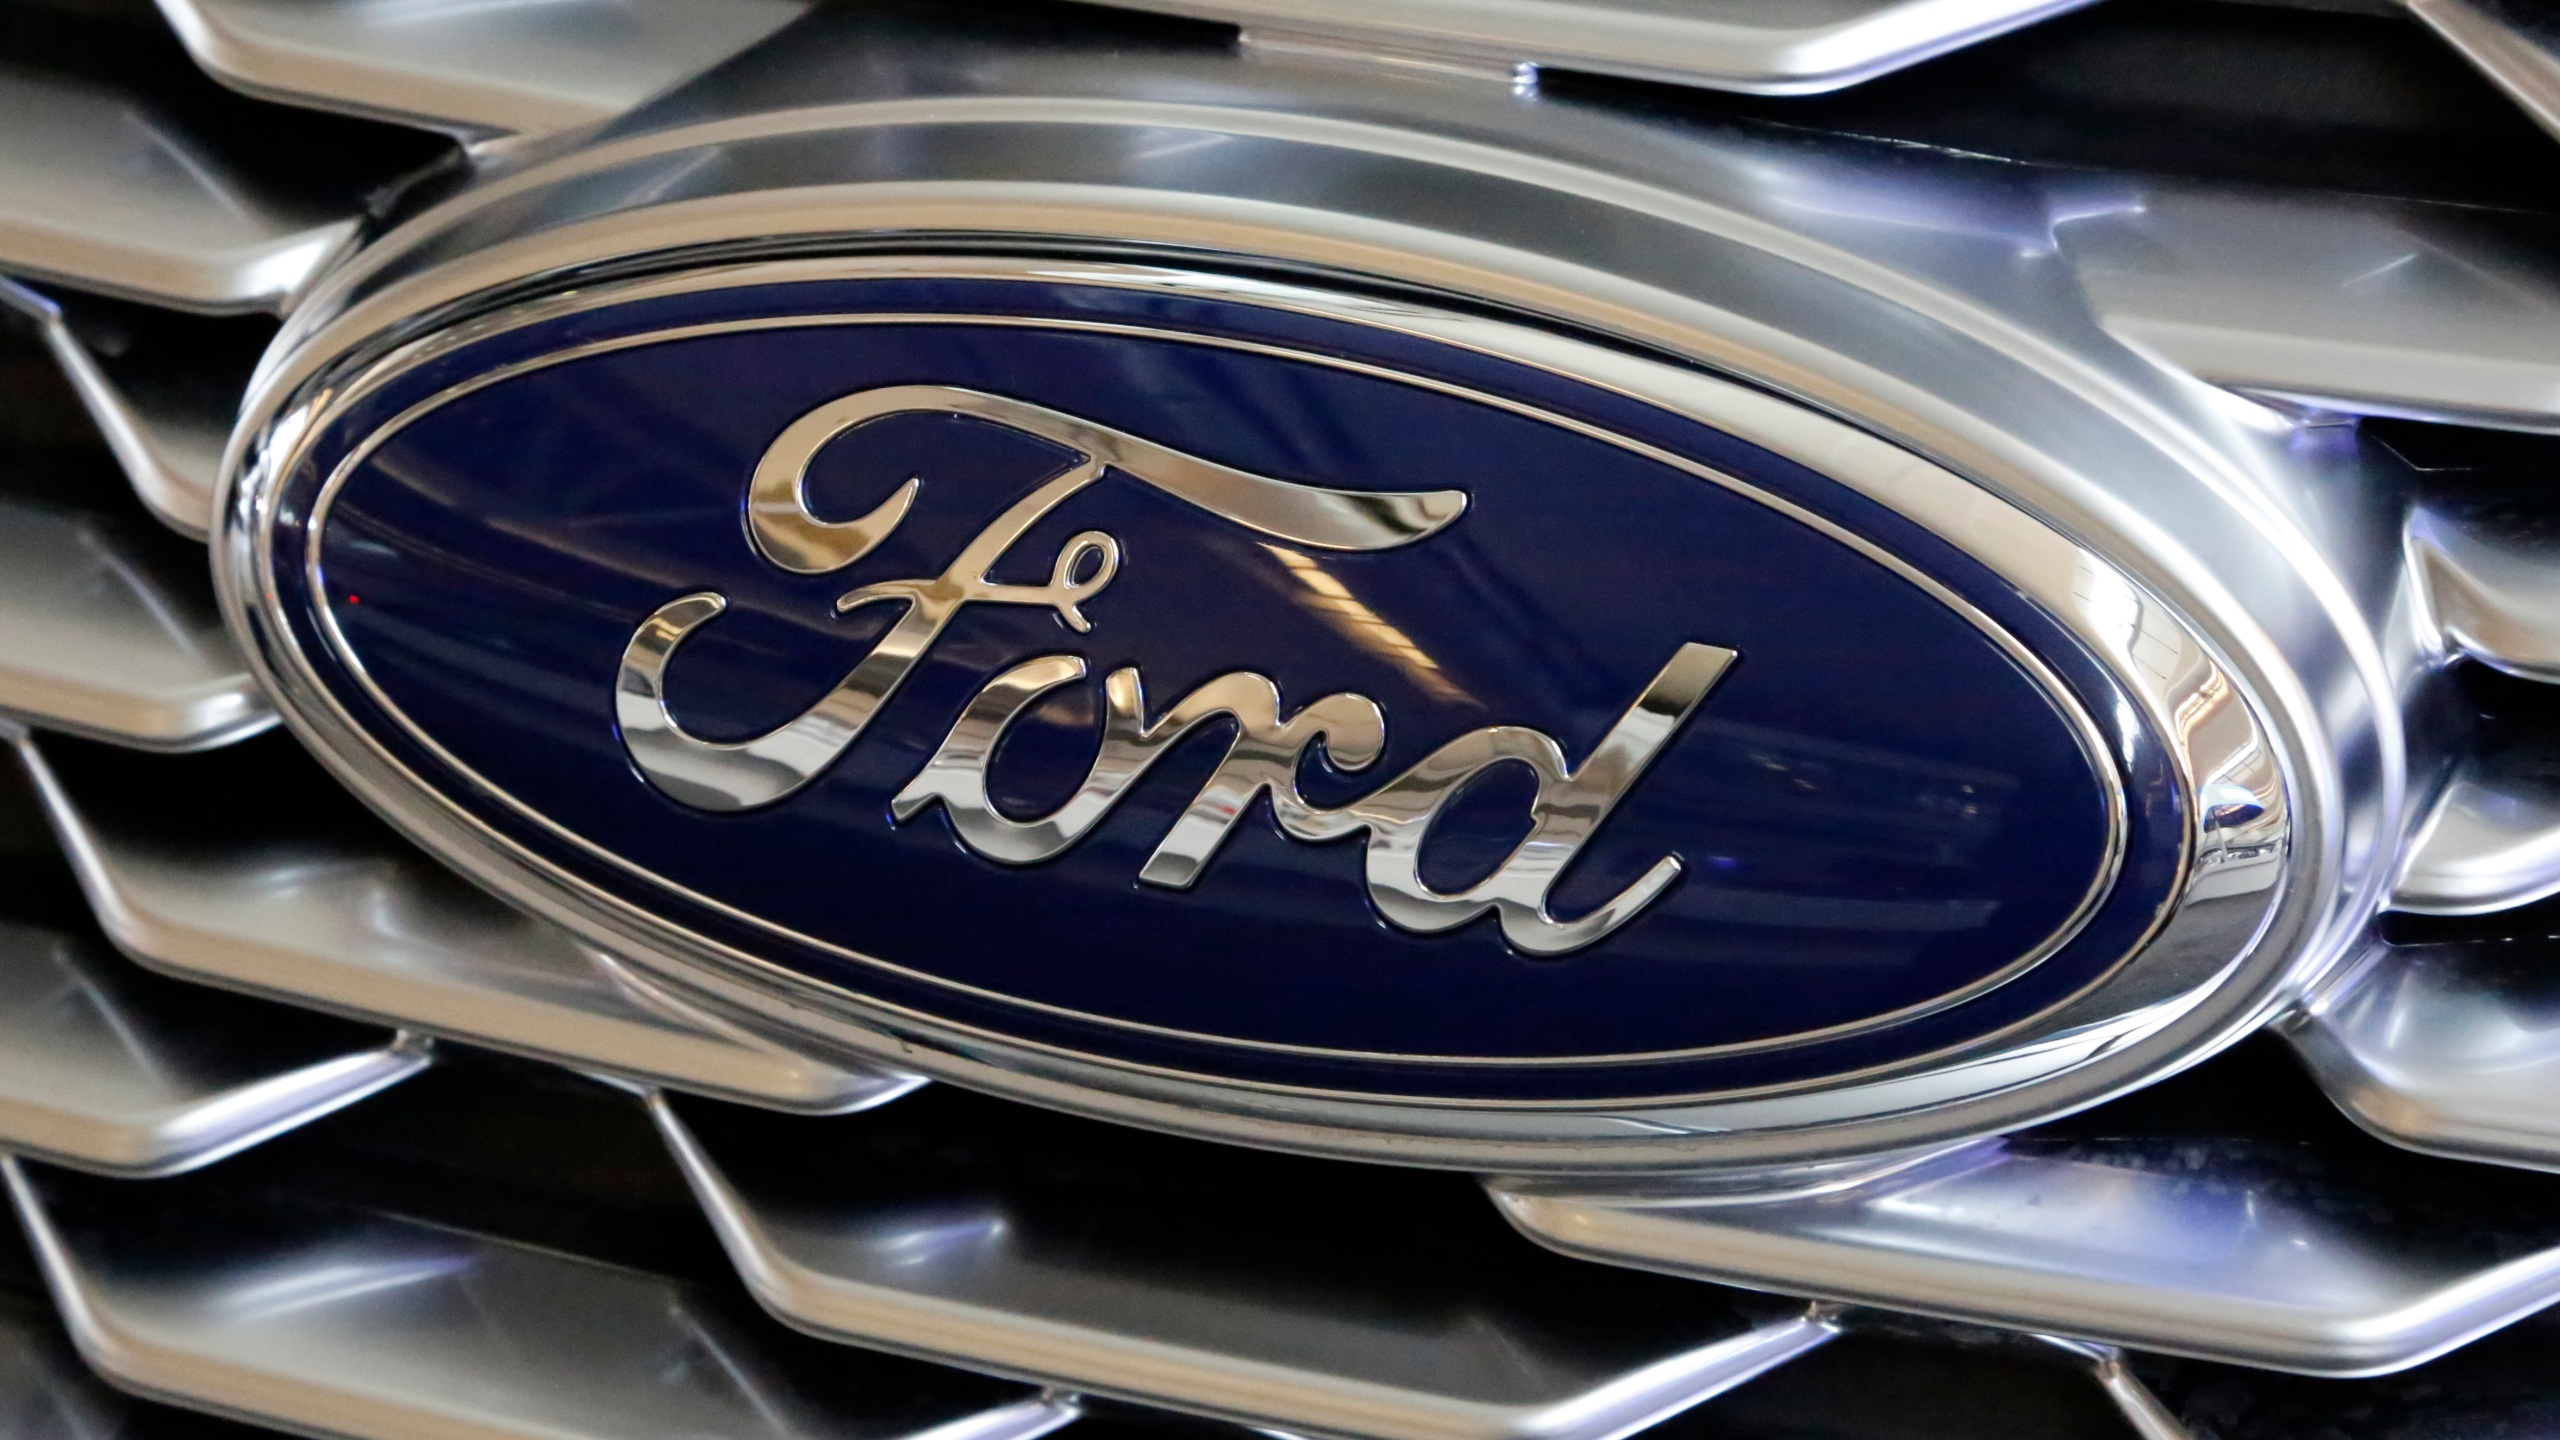 Ford Automobiles_1540481556498